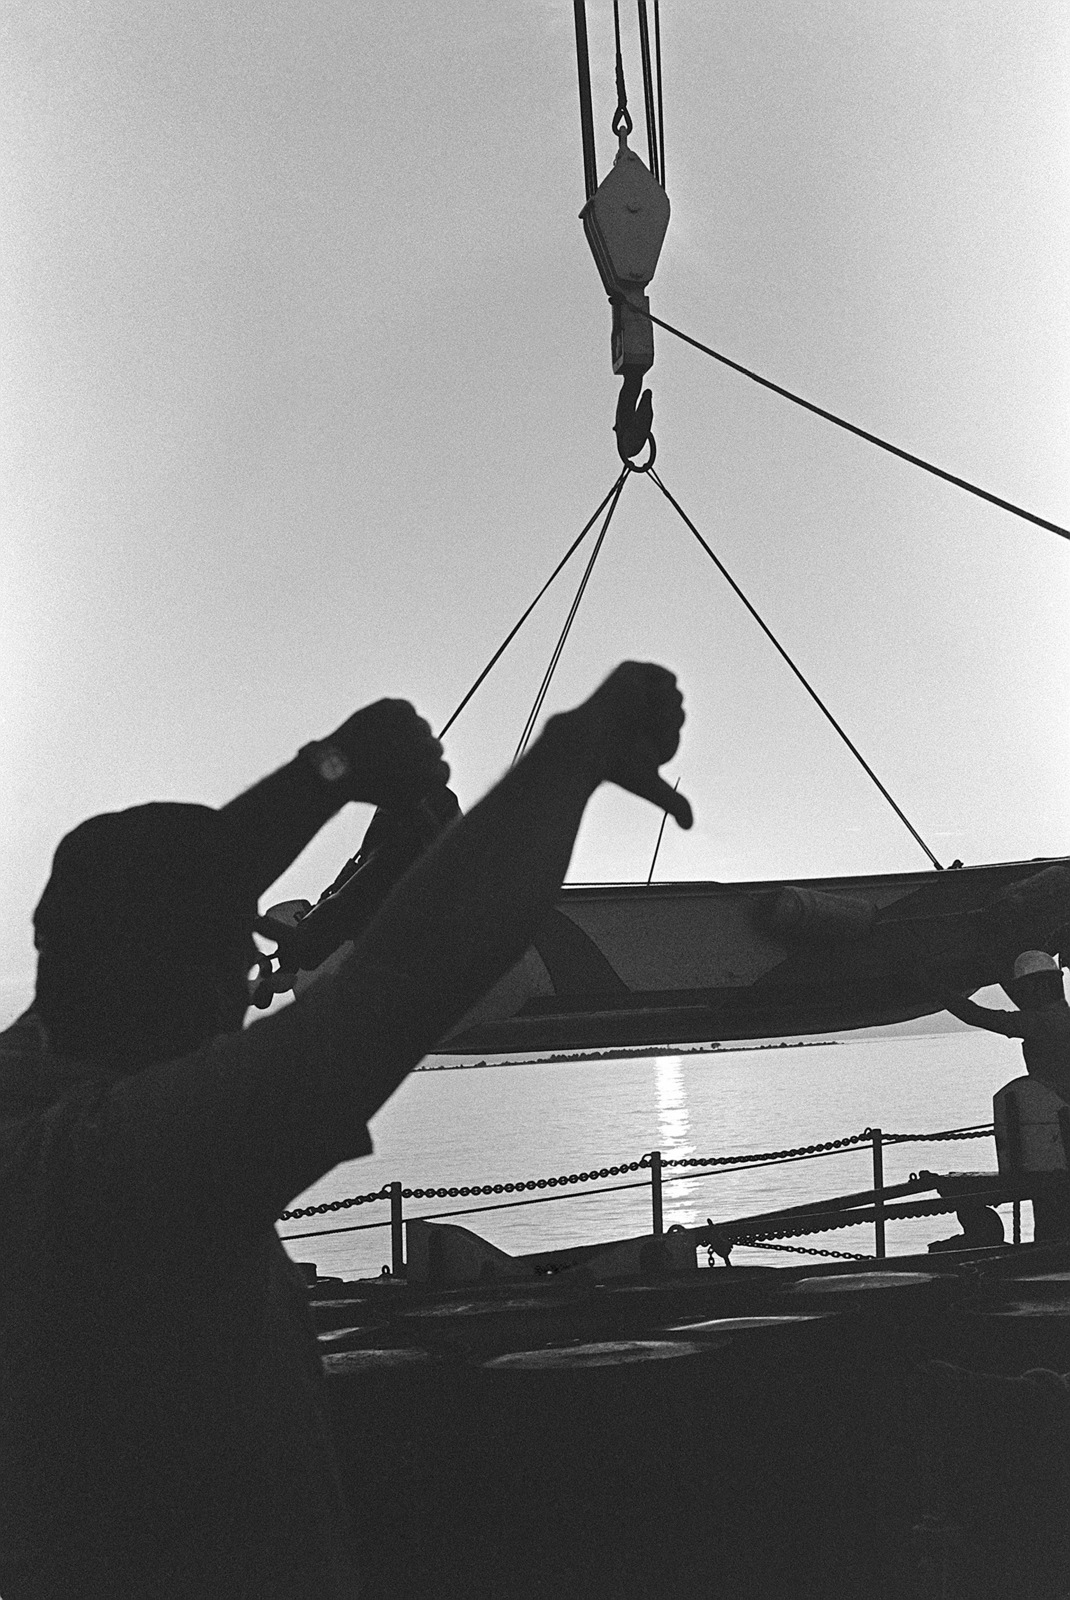 A crewman signals for a boat to be lowered from the surveying ship USNS CHAUVENET (T-AGS 29)